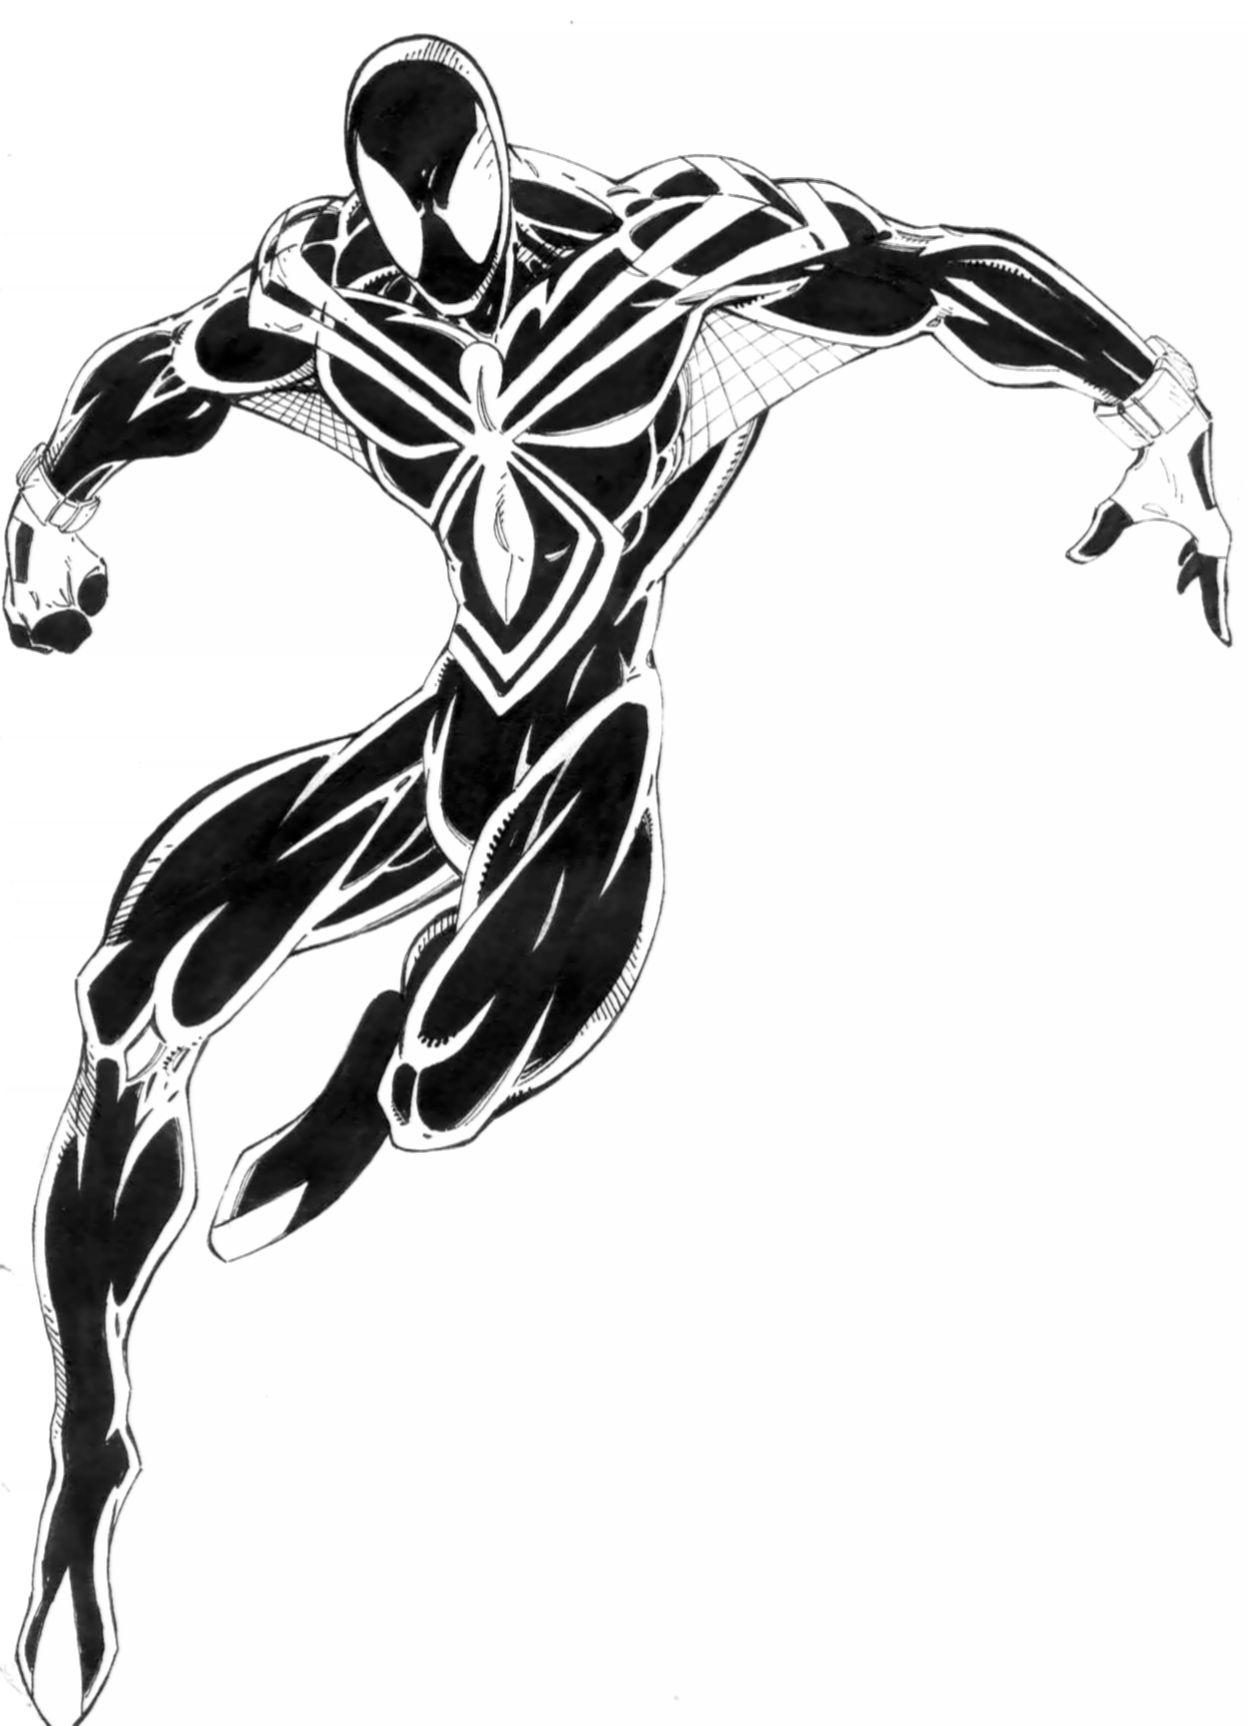 SPIDERMAN-BLACK DESIGN-1 by THEHITMANHORTON on DeviantArt